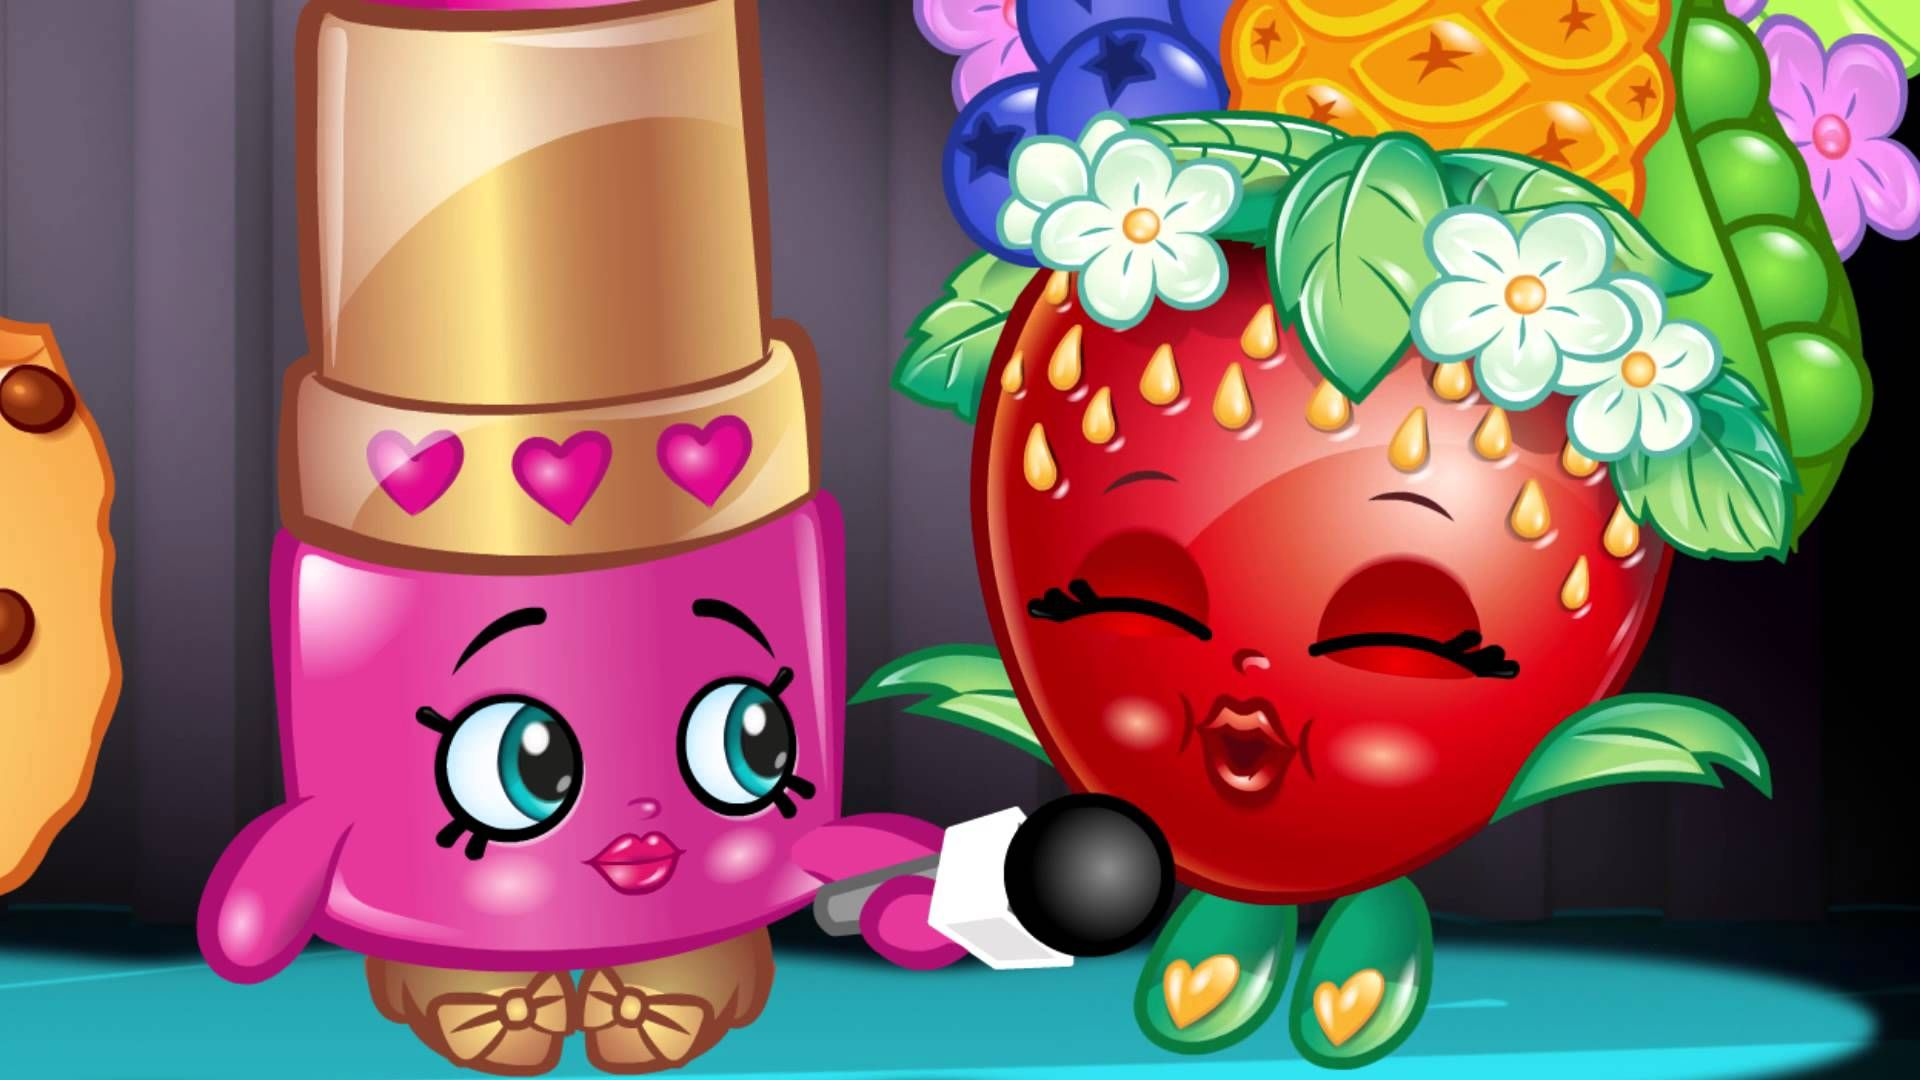 shopkins cartoon episode - photo #14